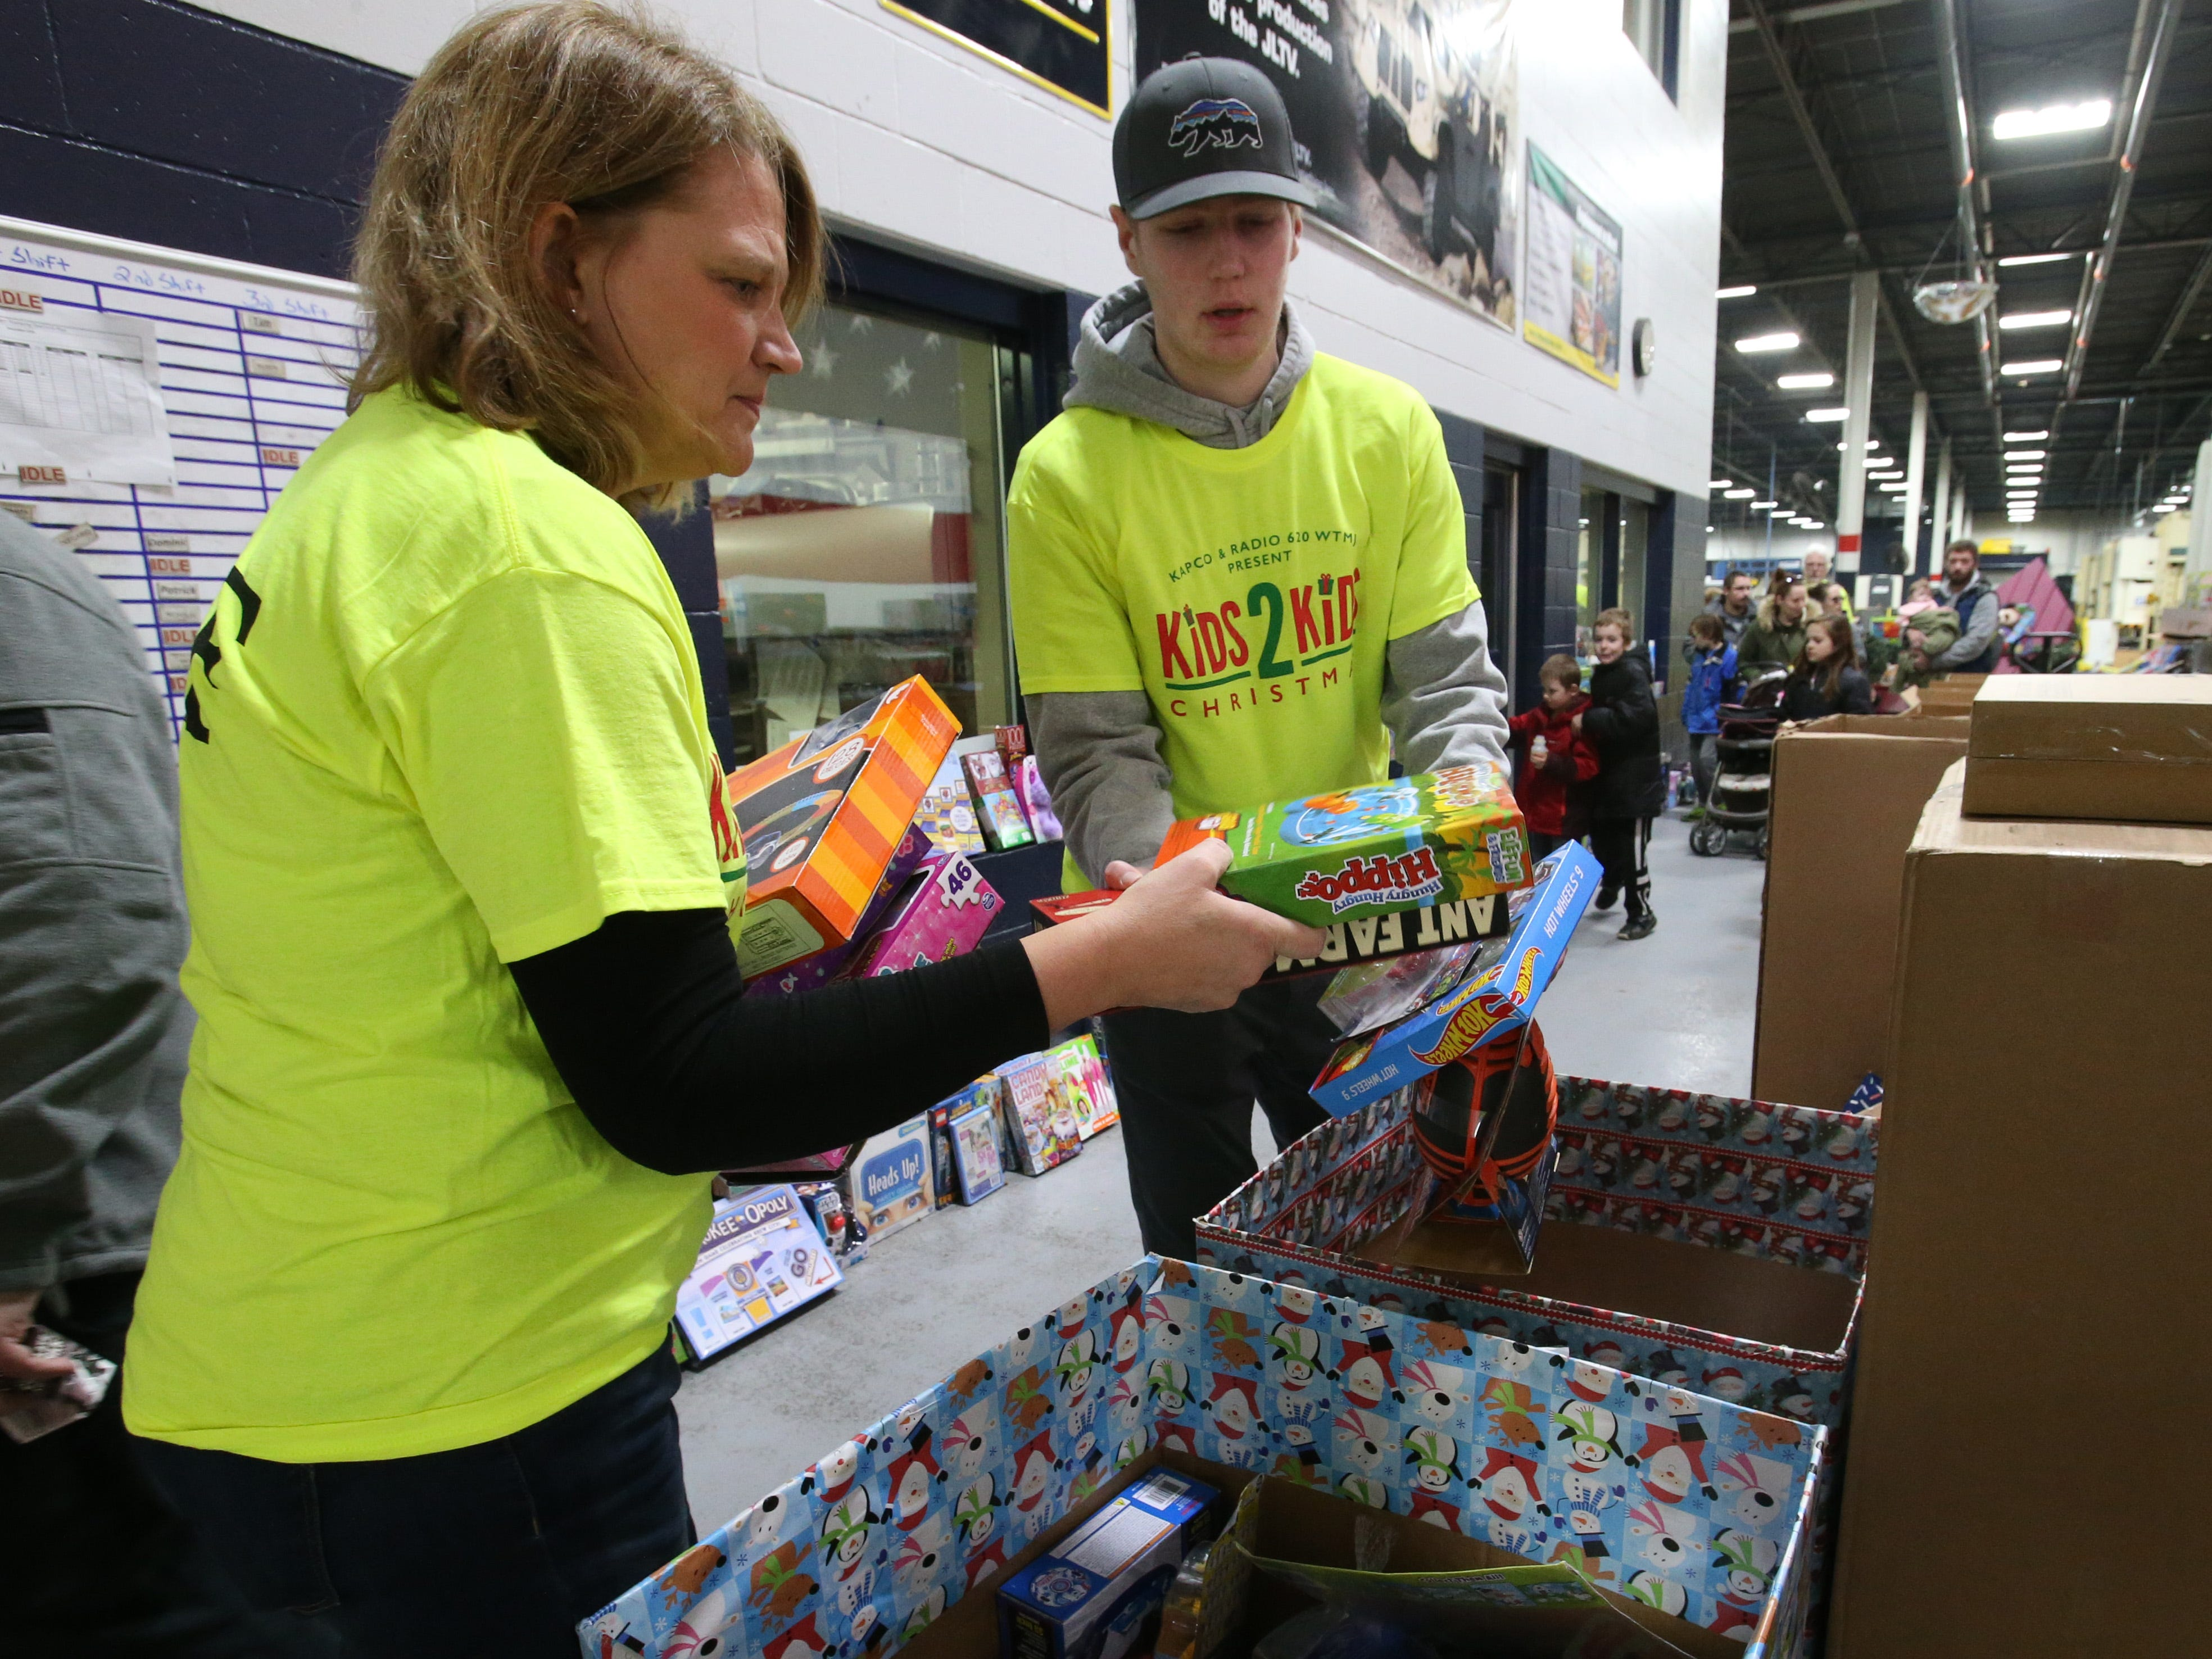 Kathy Ebacher and Nick Johnson sort incoming toys at the Kids2Kids Christmas celebration at Kapco Metal Stamping in Grafton on Dec. 15 that concluded a month-long toy drive that collected more than 22,000 toys to be distributed to children in Ozaukee and Milwaukee counties.